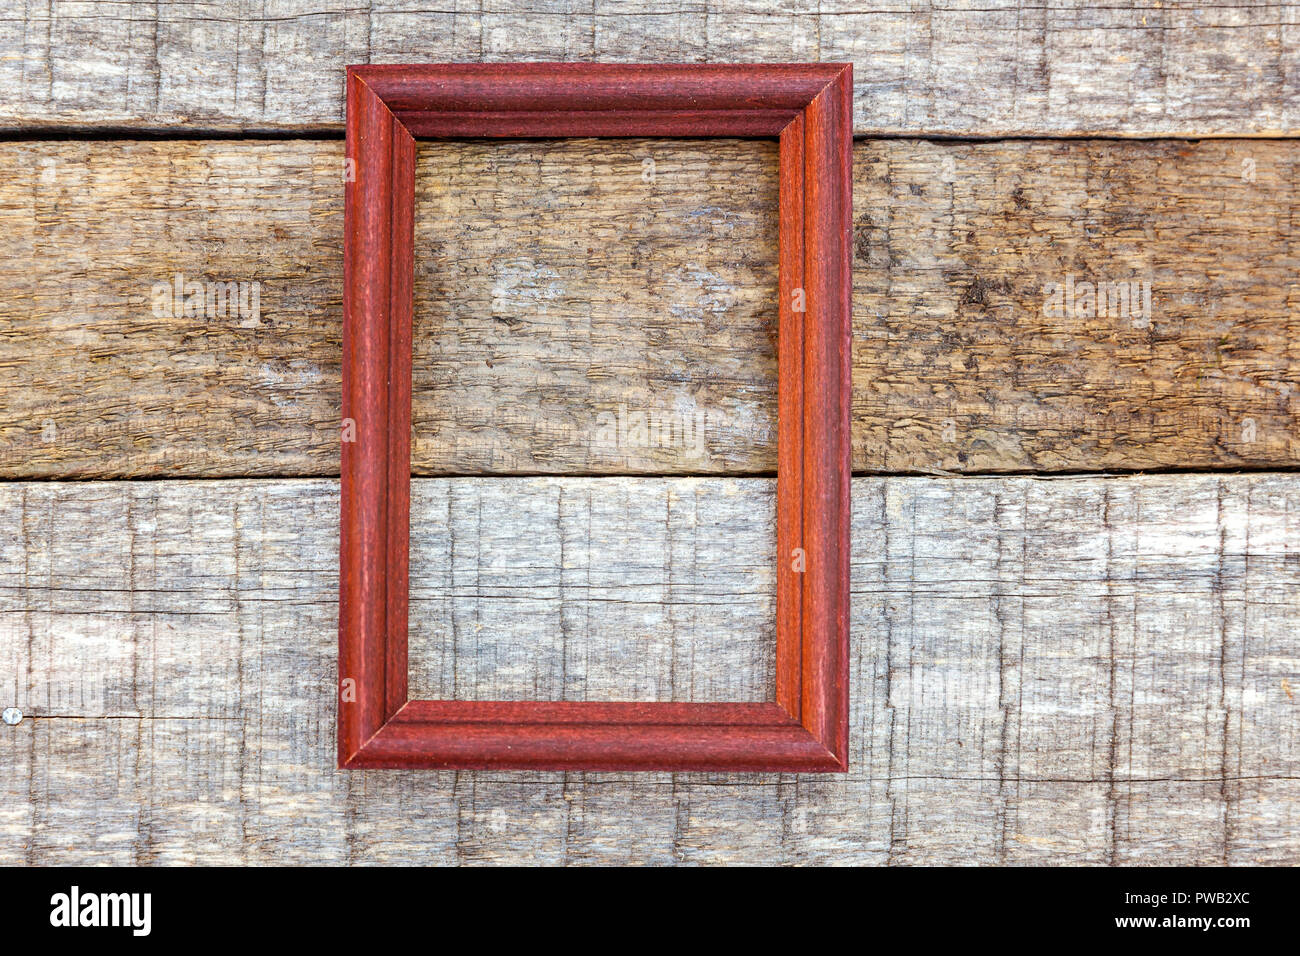 Simple Eco Rustic Old Vintage Wooden Frame On Desk Texture Background.  Close Up Of Wall Made Of Wooden Planks. Top View, Flat Lay, Copy Space,  Mock Up